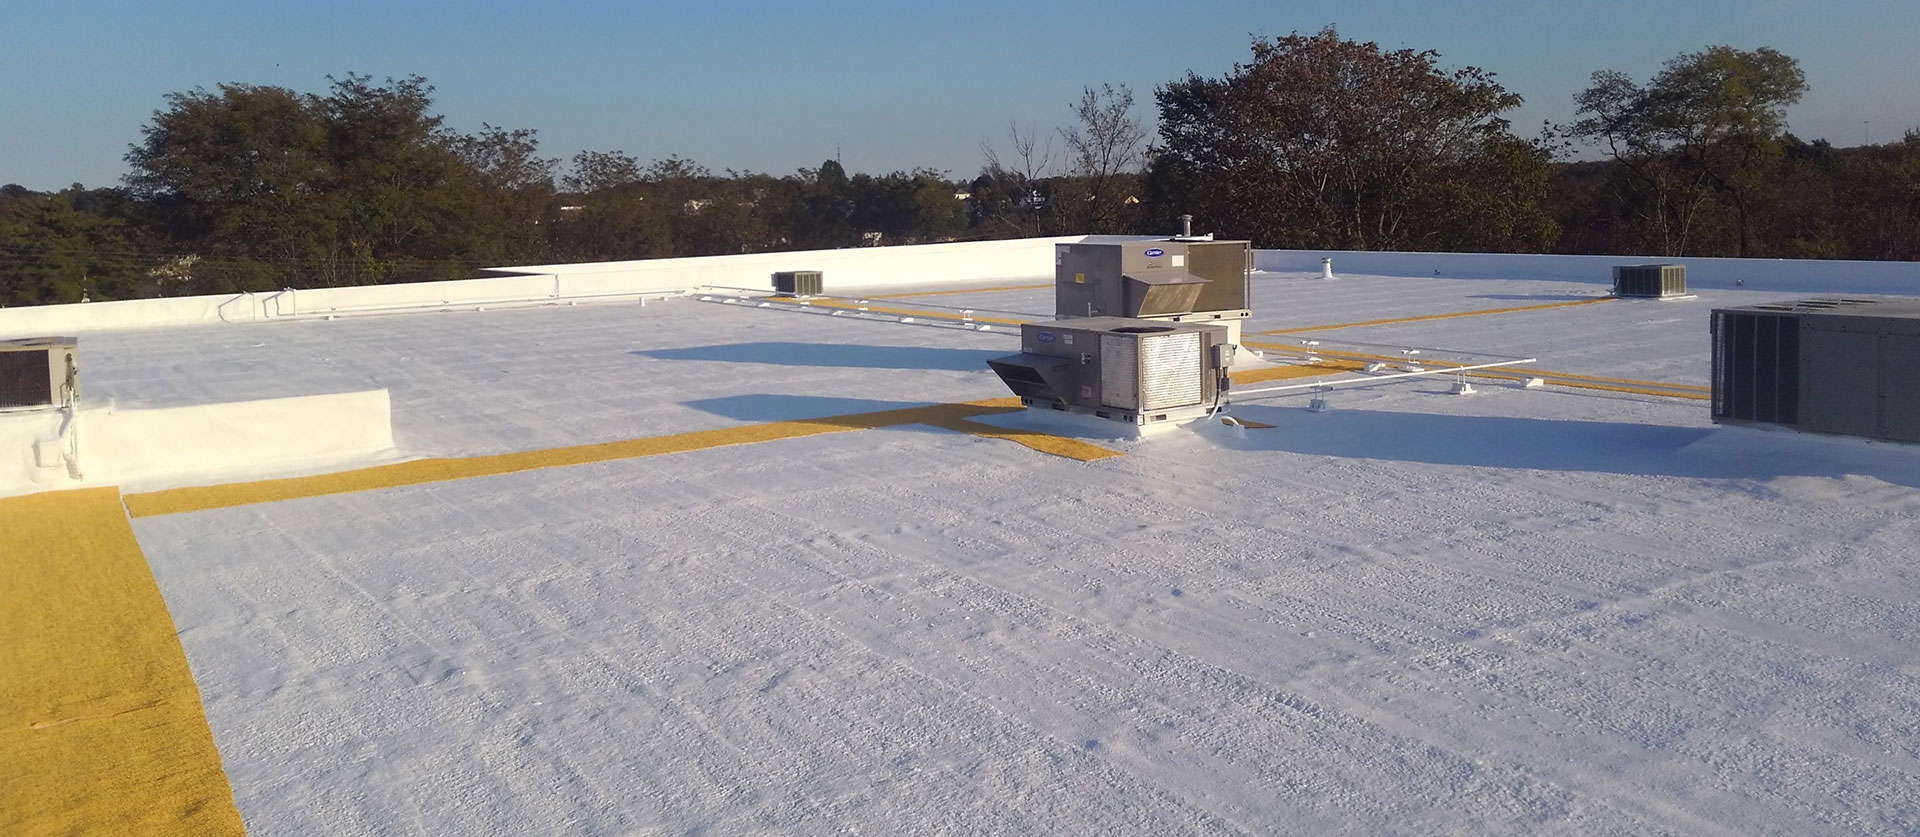 JD Coatings  Commercial Roofing, Waterproofing and Seamless Coating